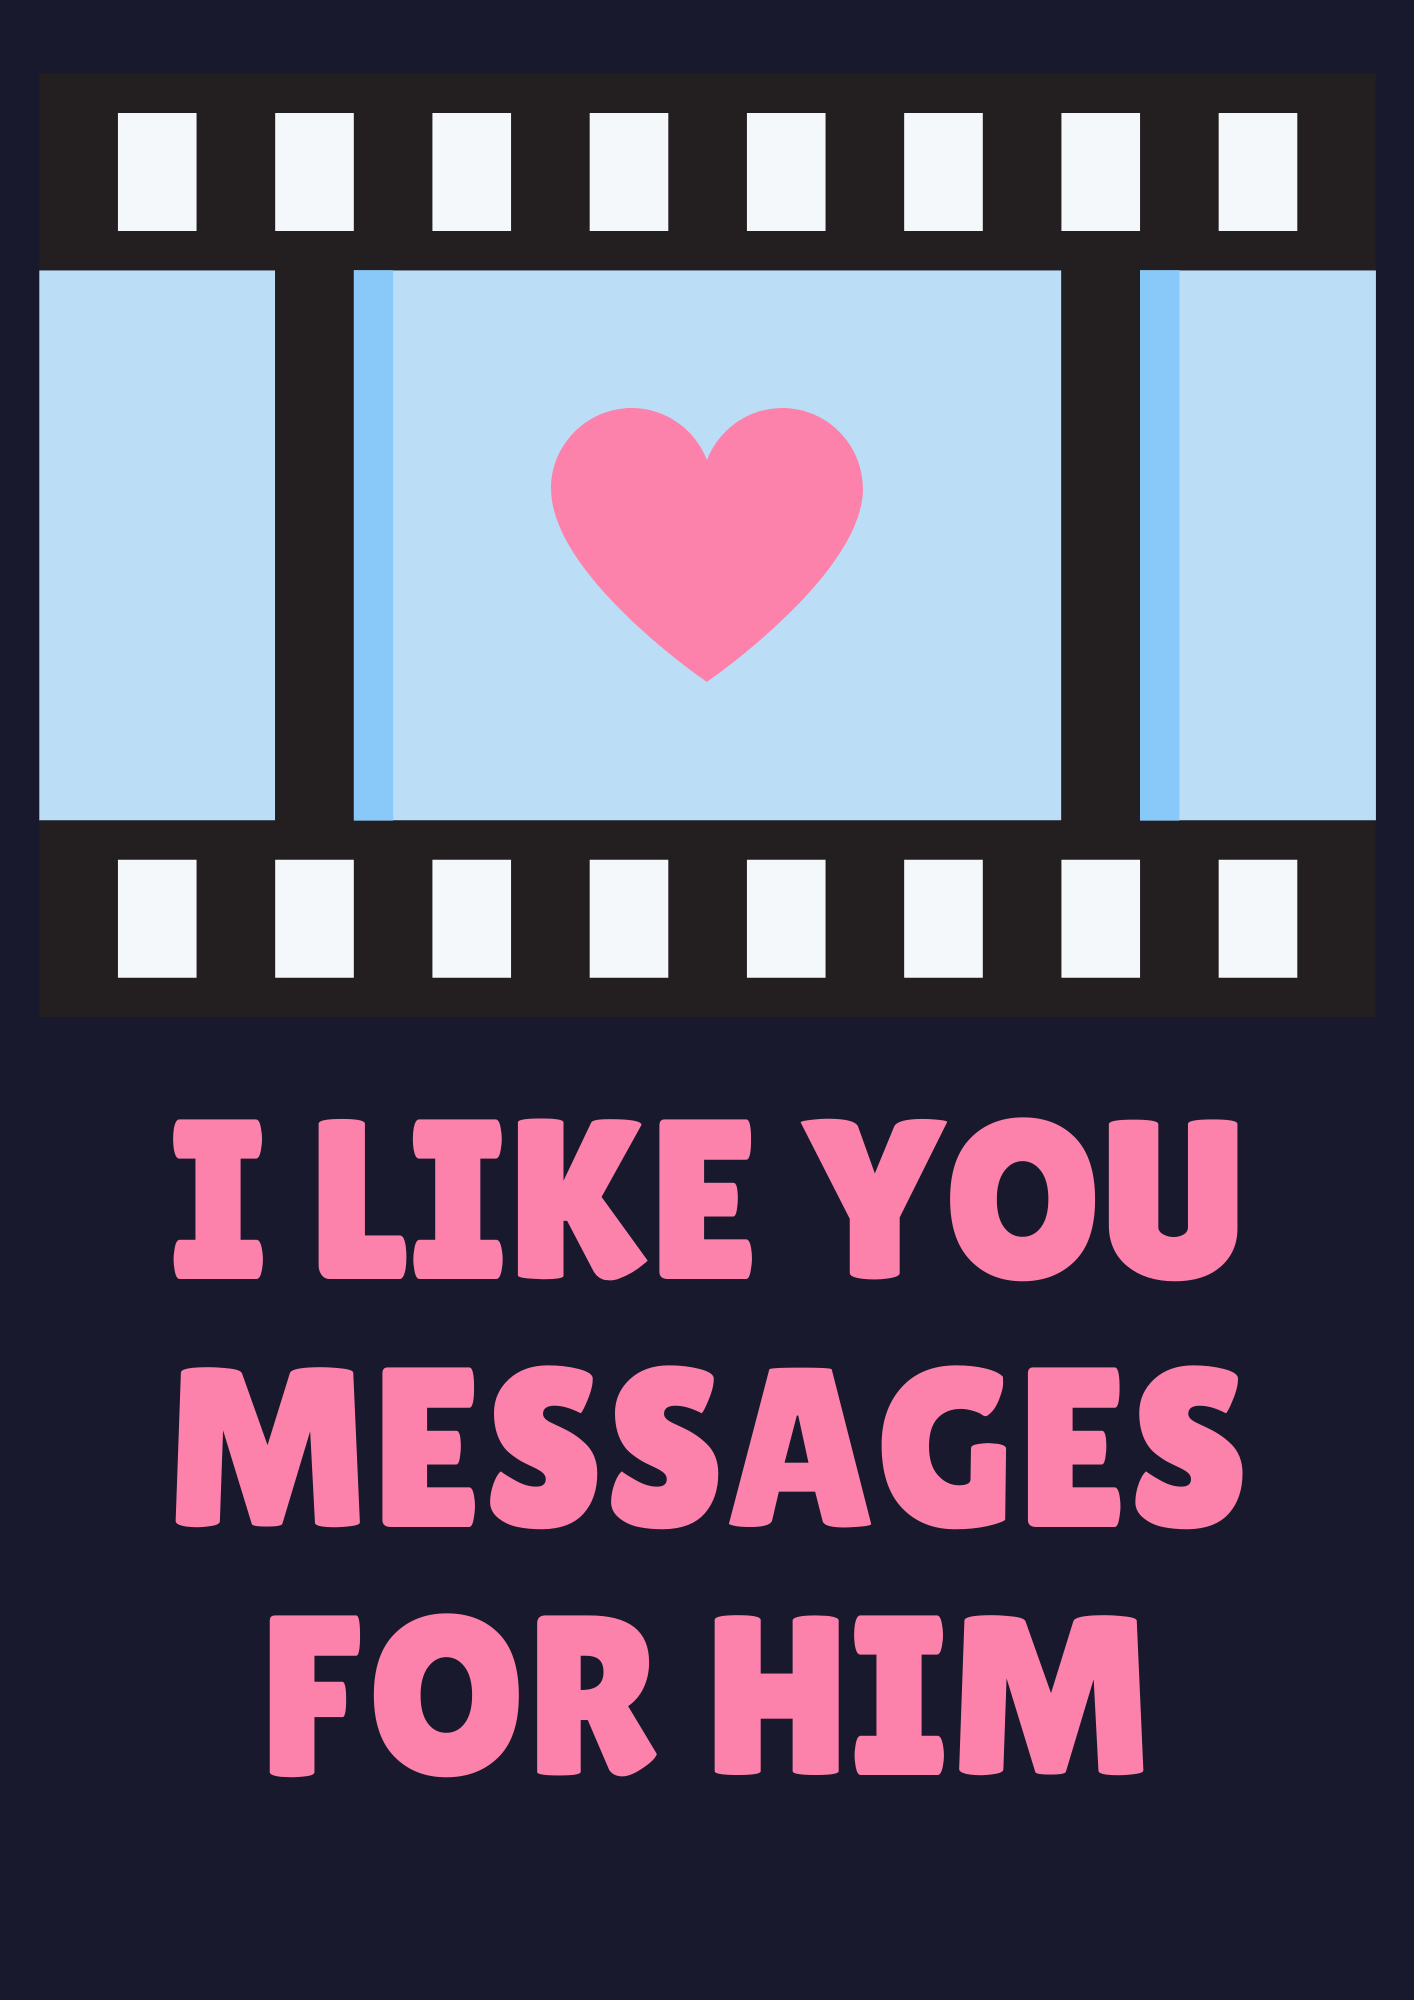 i like you messages for him